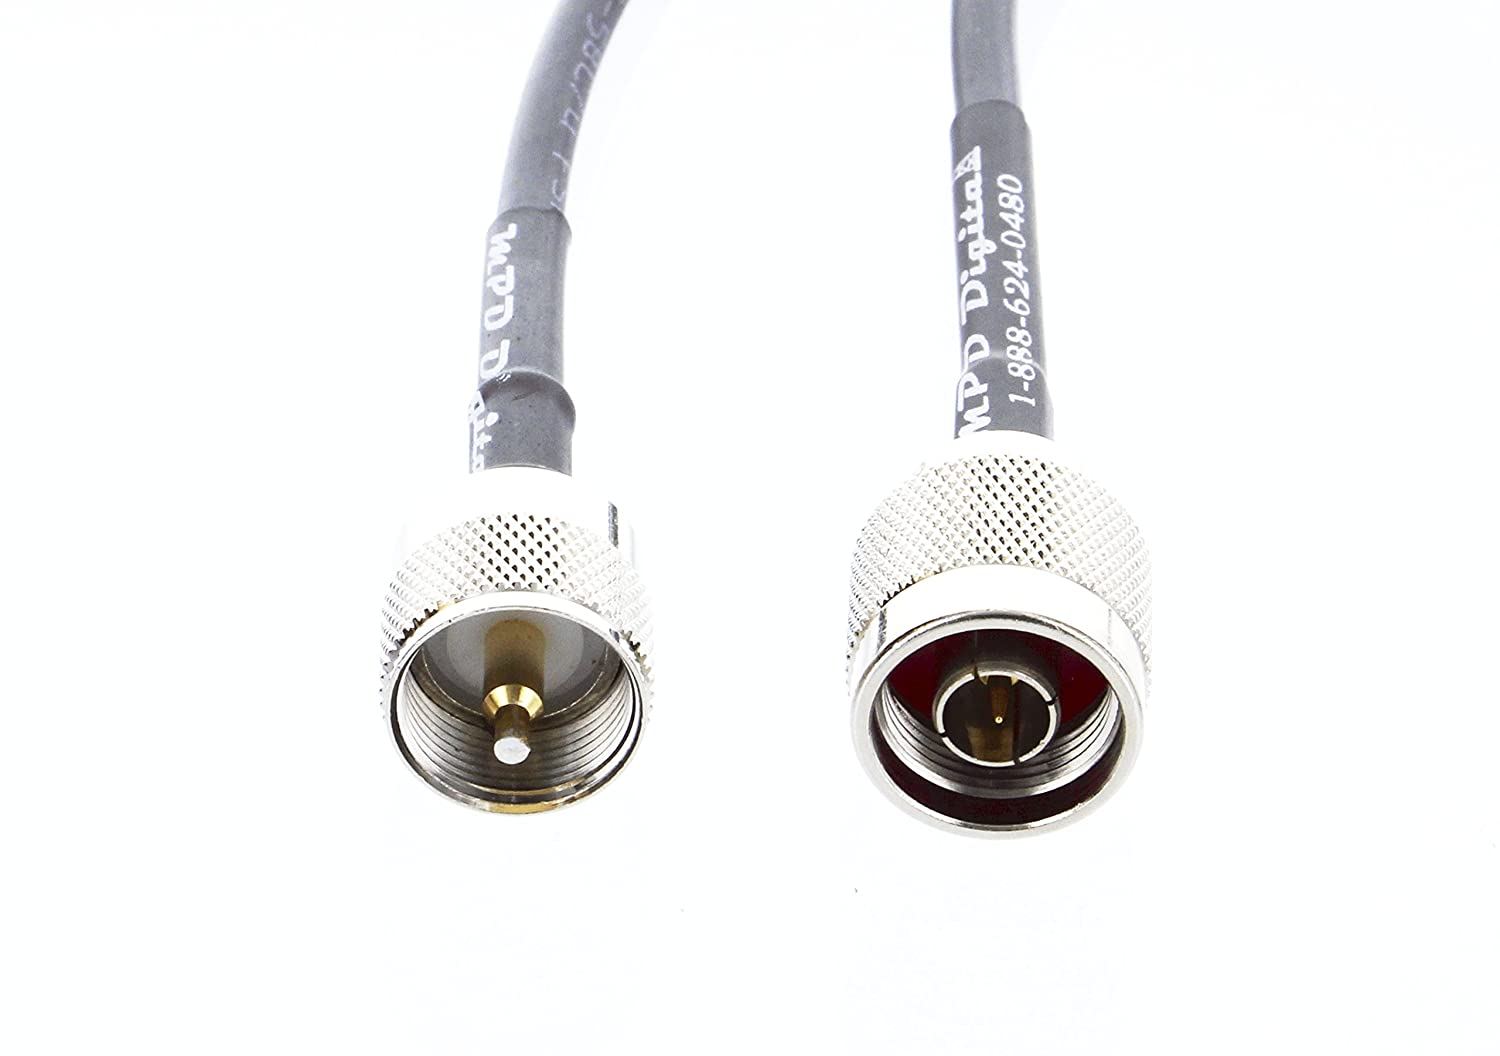 Amazon.com: MILSPEC RG-213 Coaxial Jumper N Male to PL-259 Male Coax Connectors for Ham CB UHF VHF RF - RG213 213 MIL-C-17 M17/163A RG-213U Coaxial Cable ...